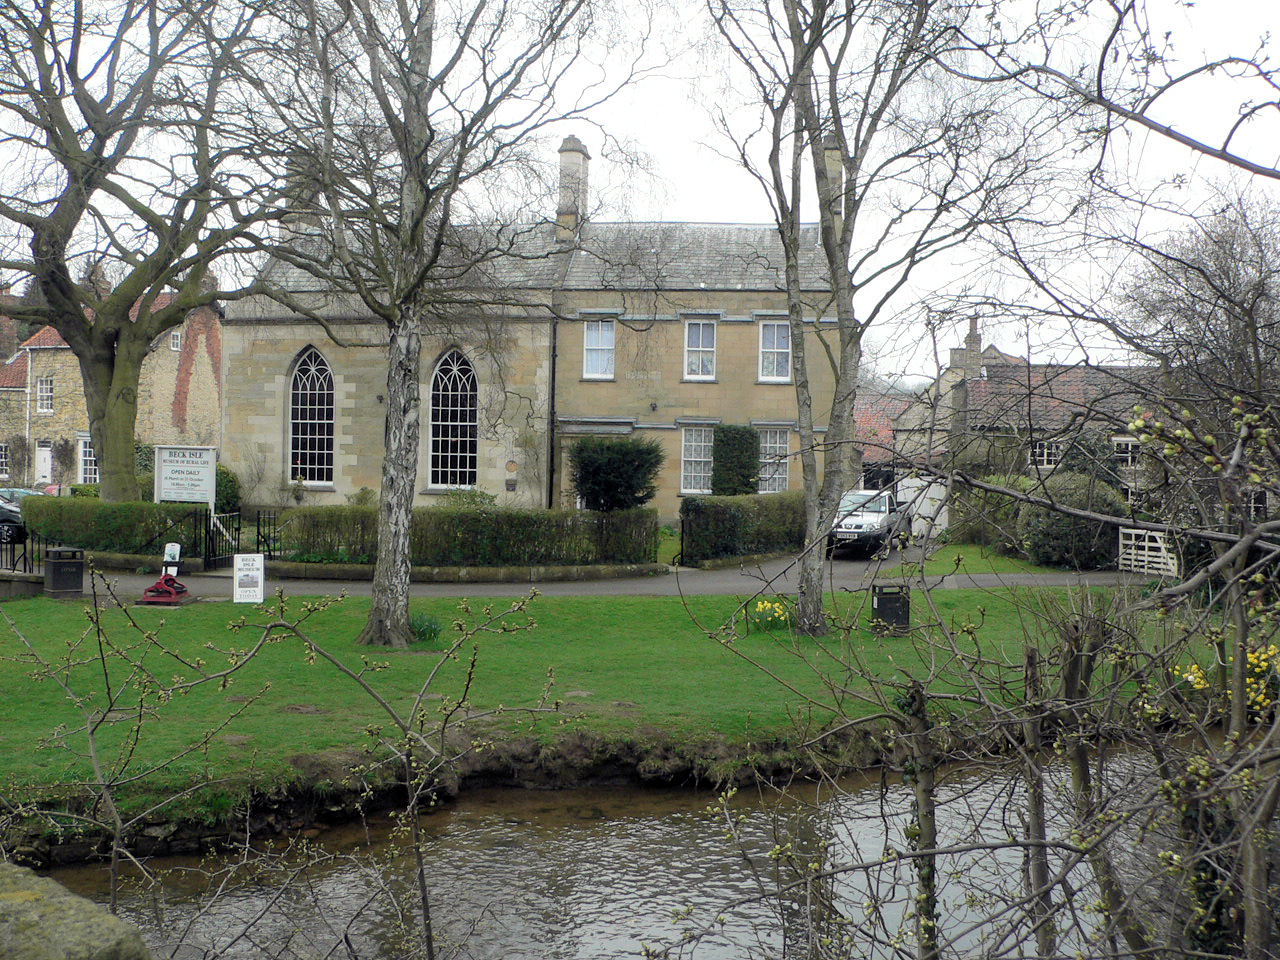 Beck Isle Museum, Pickering, North Yorkshire